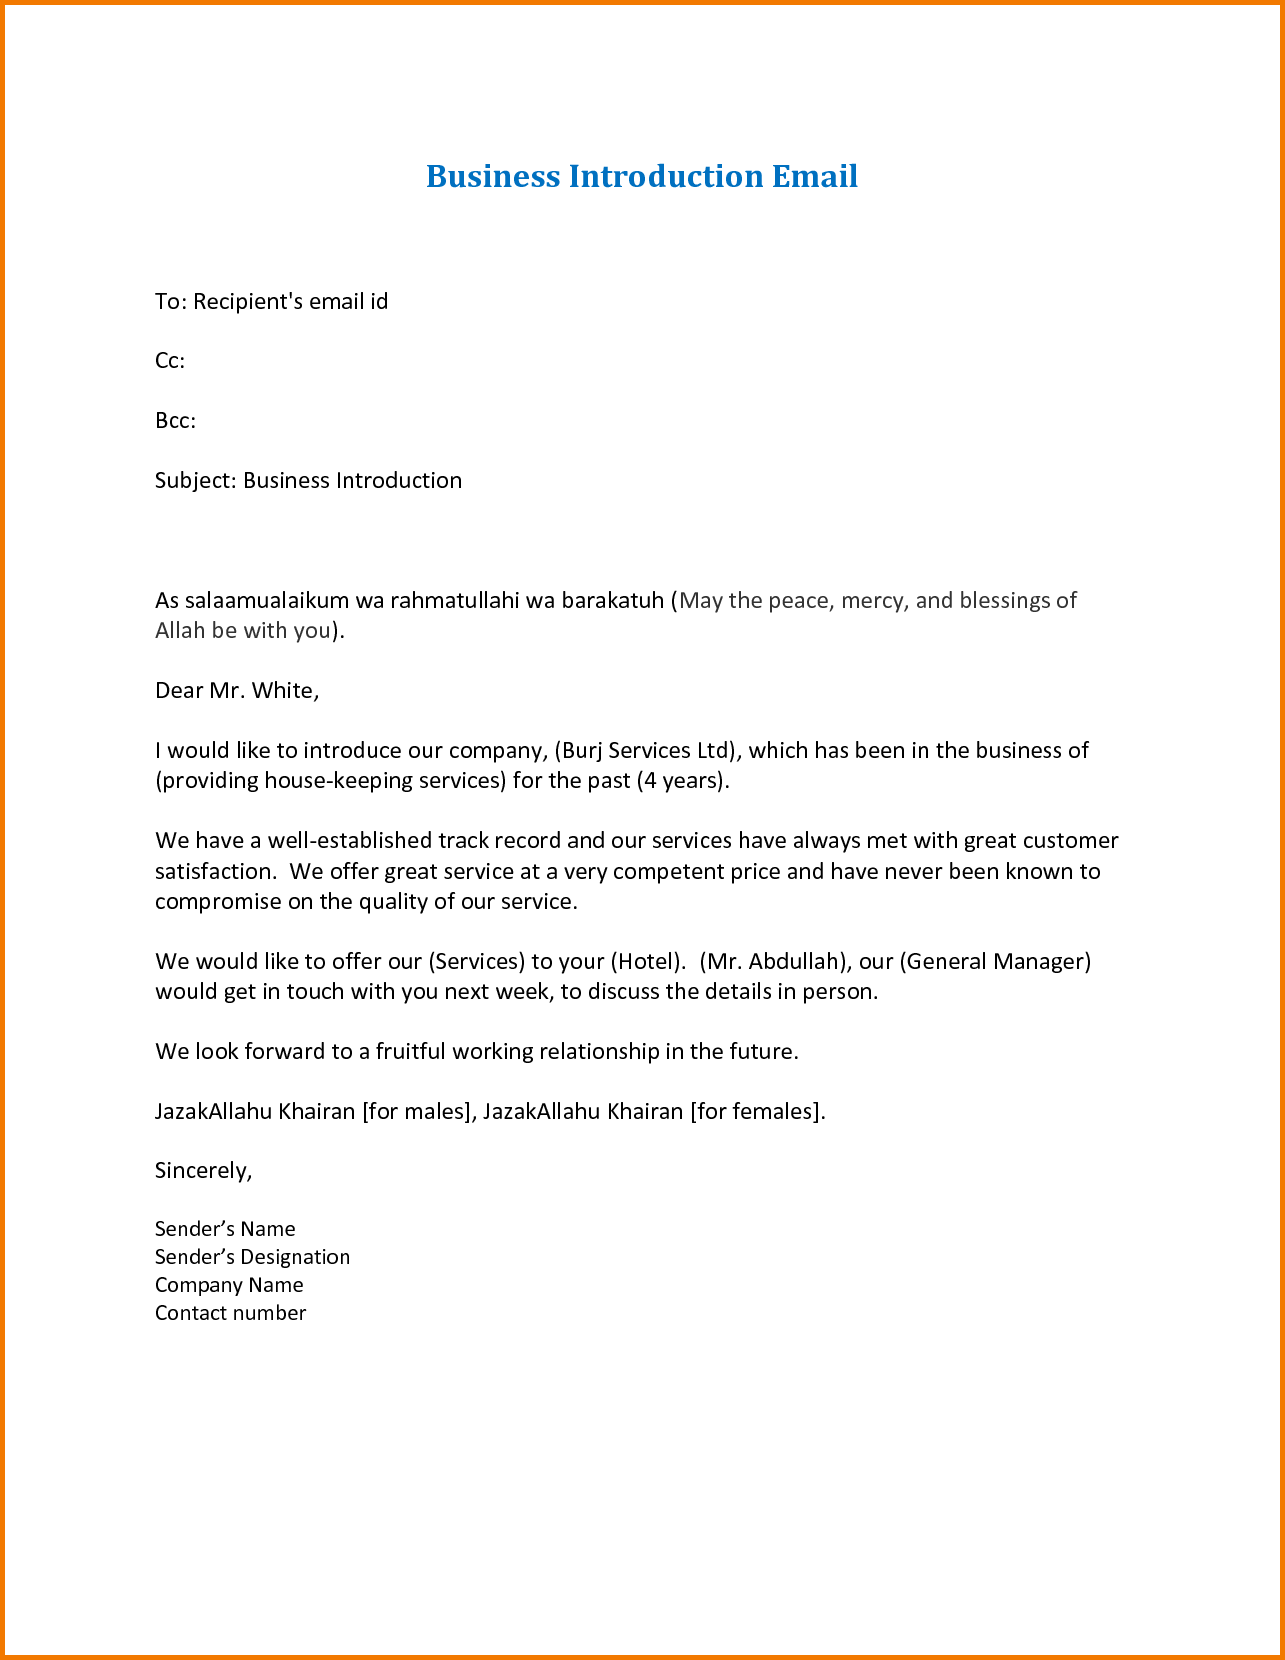 Company introduction email template letter civil contractor formal company introduction email template letter civil contractor formal format altavistaventures Image collections